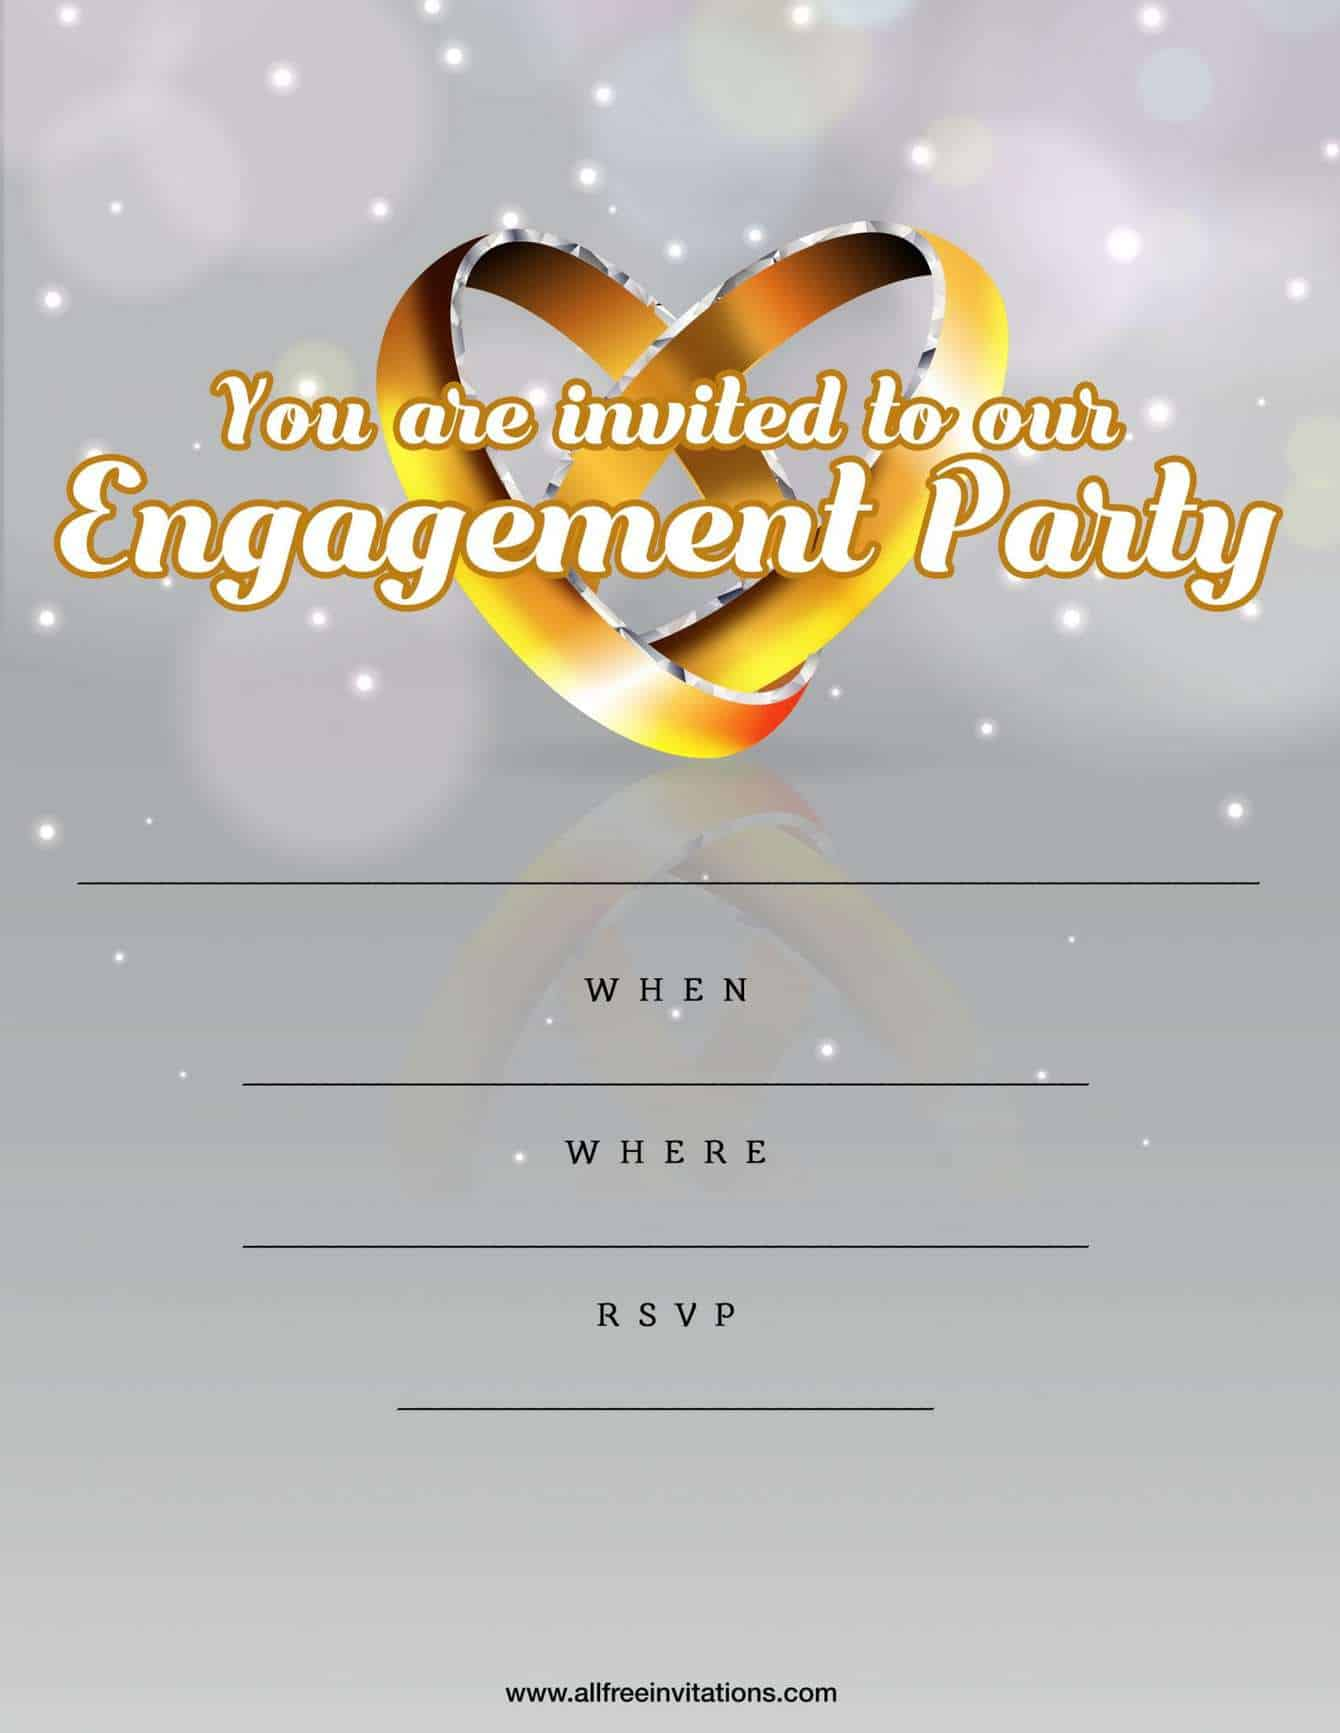 Engagement party invitation silver and gold design